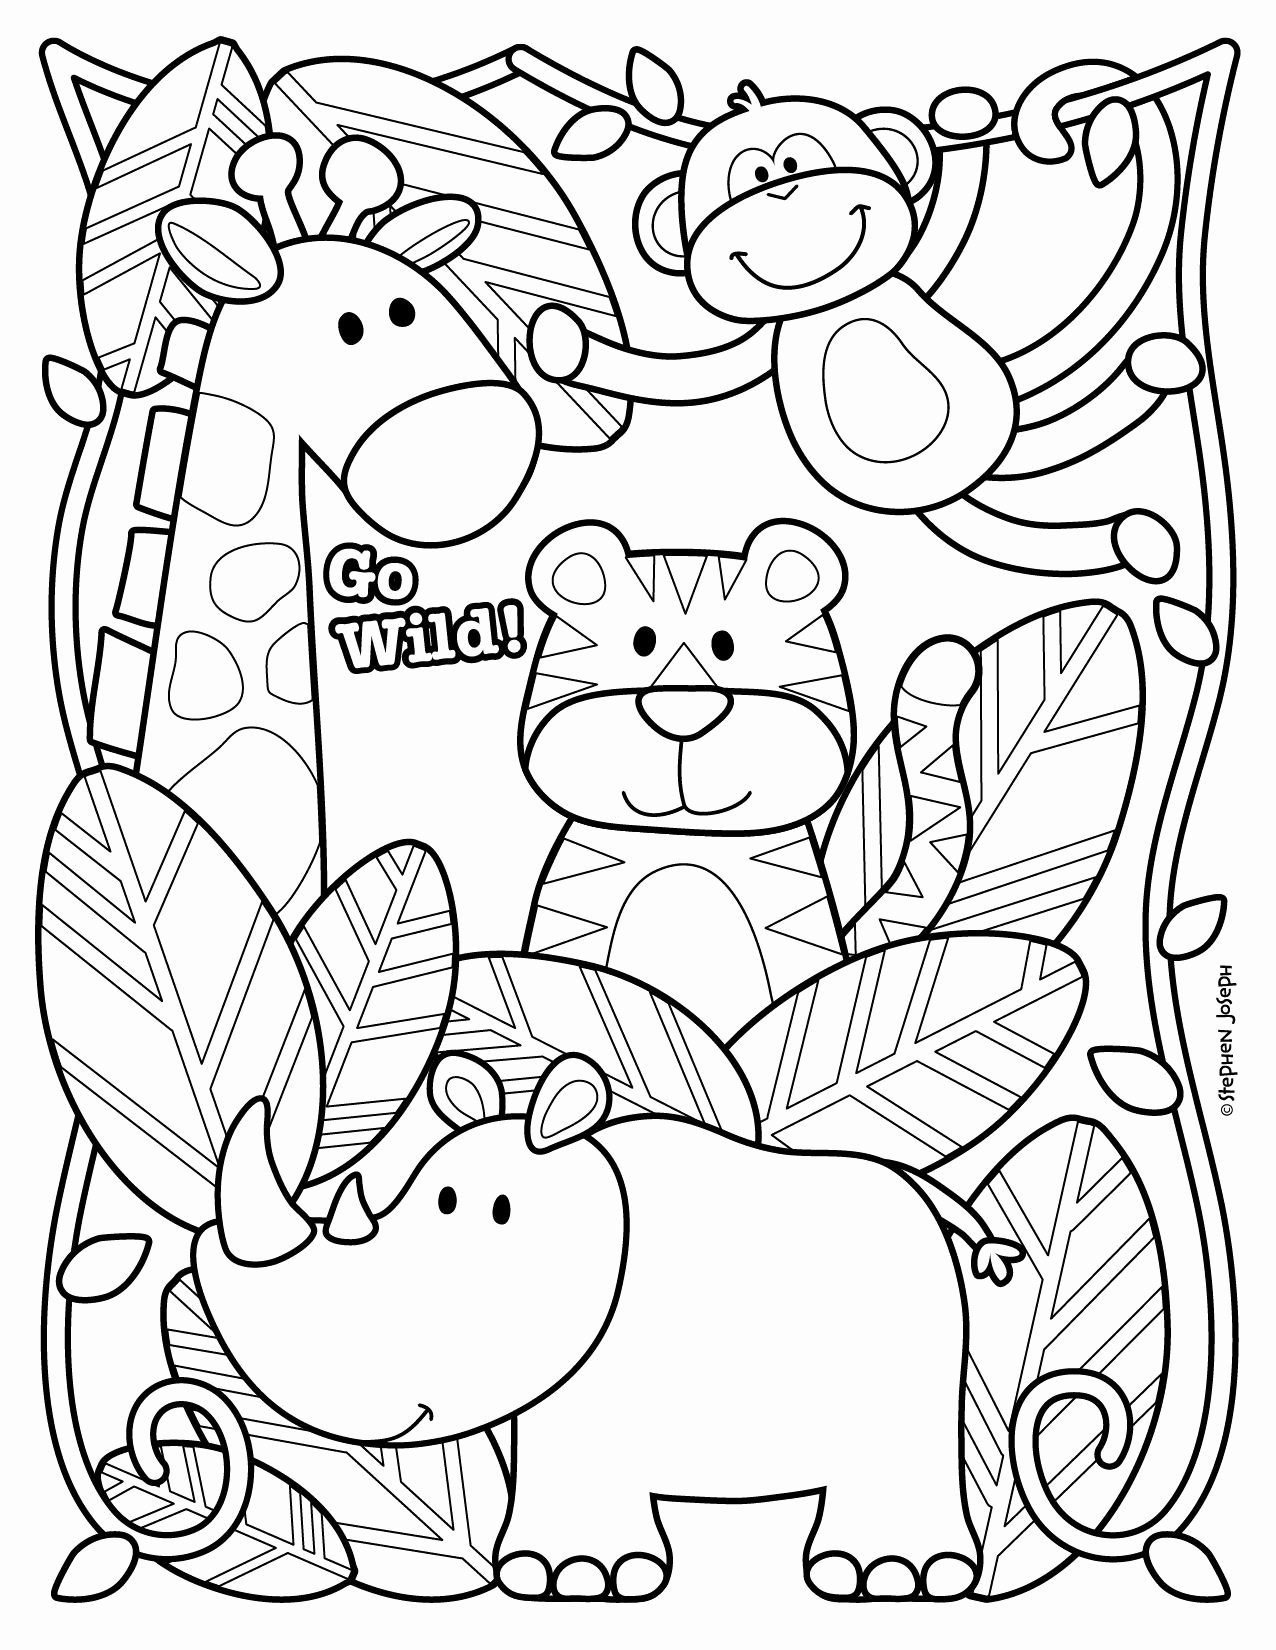 Animal Worksheets for Preschoolers Awesome Coloring Best Printable Zoo Animal with forolers Baby